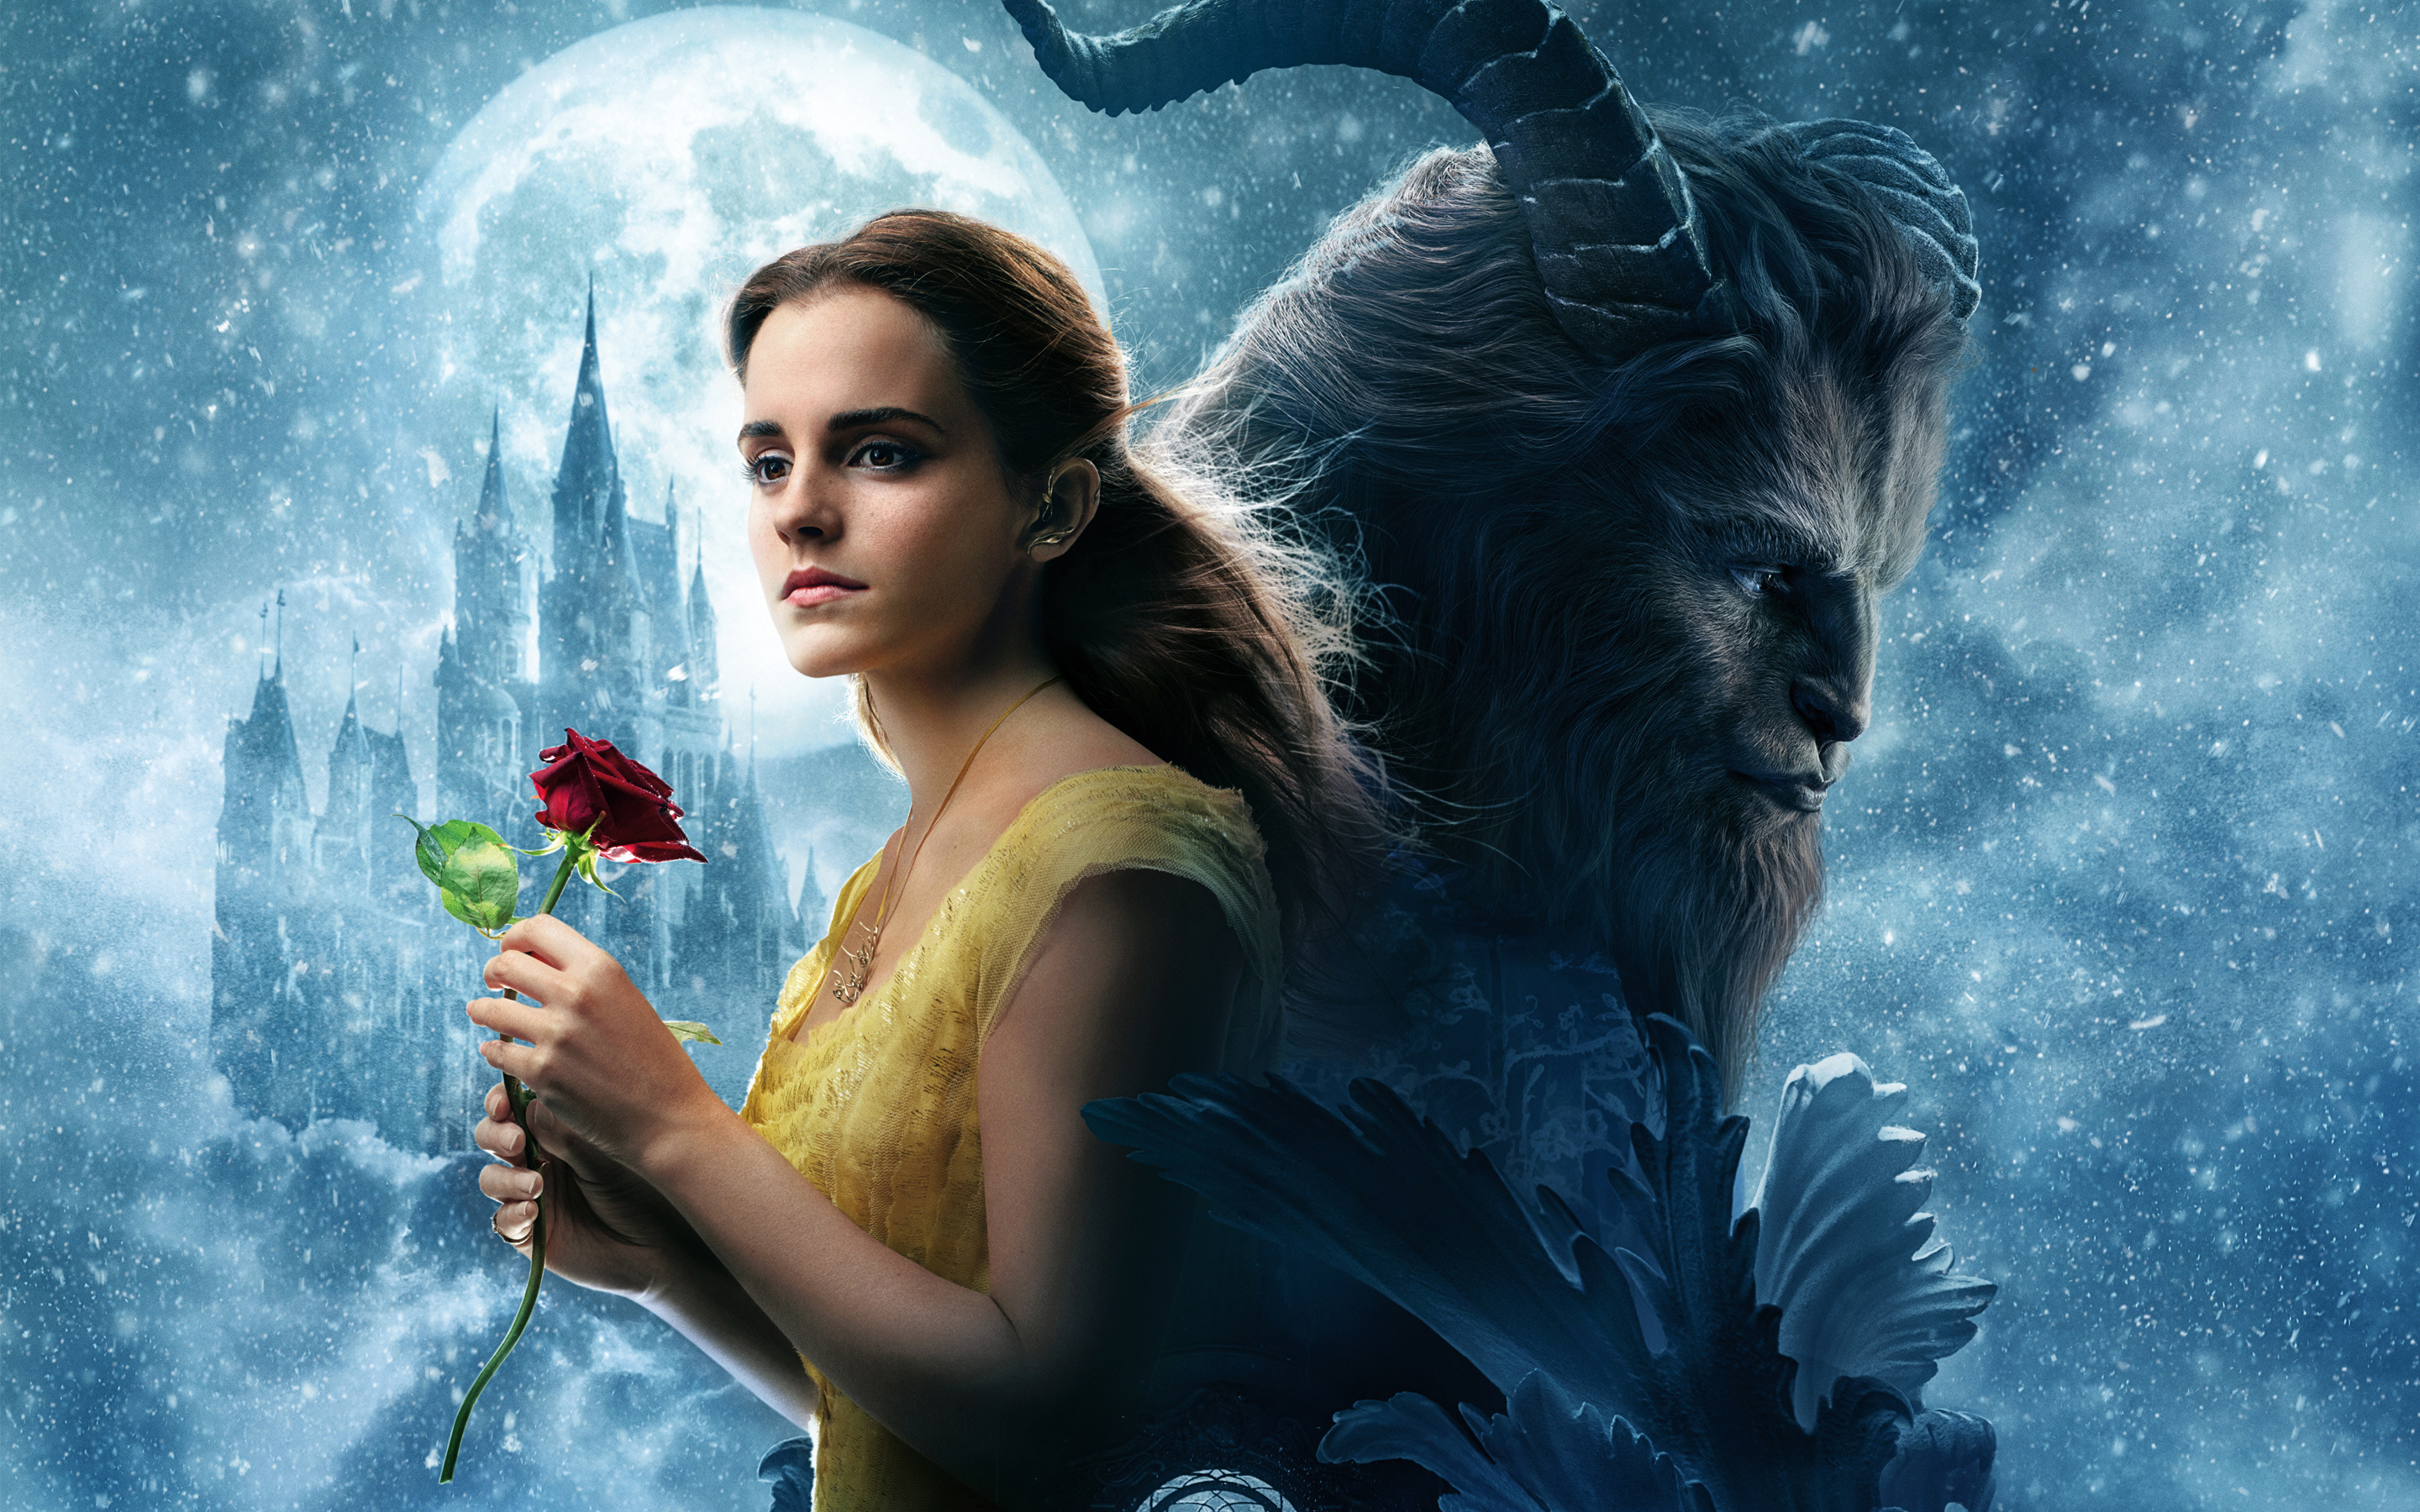 Emma Watson Beauty And The Beast For Wallpaper Size 2880x1800